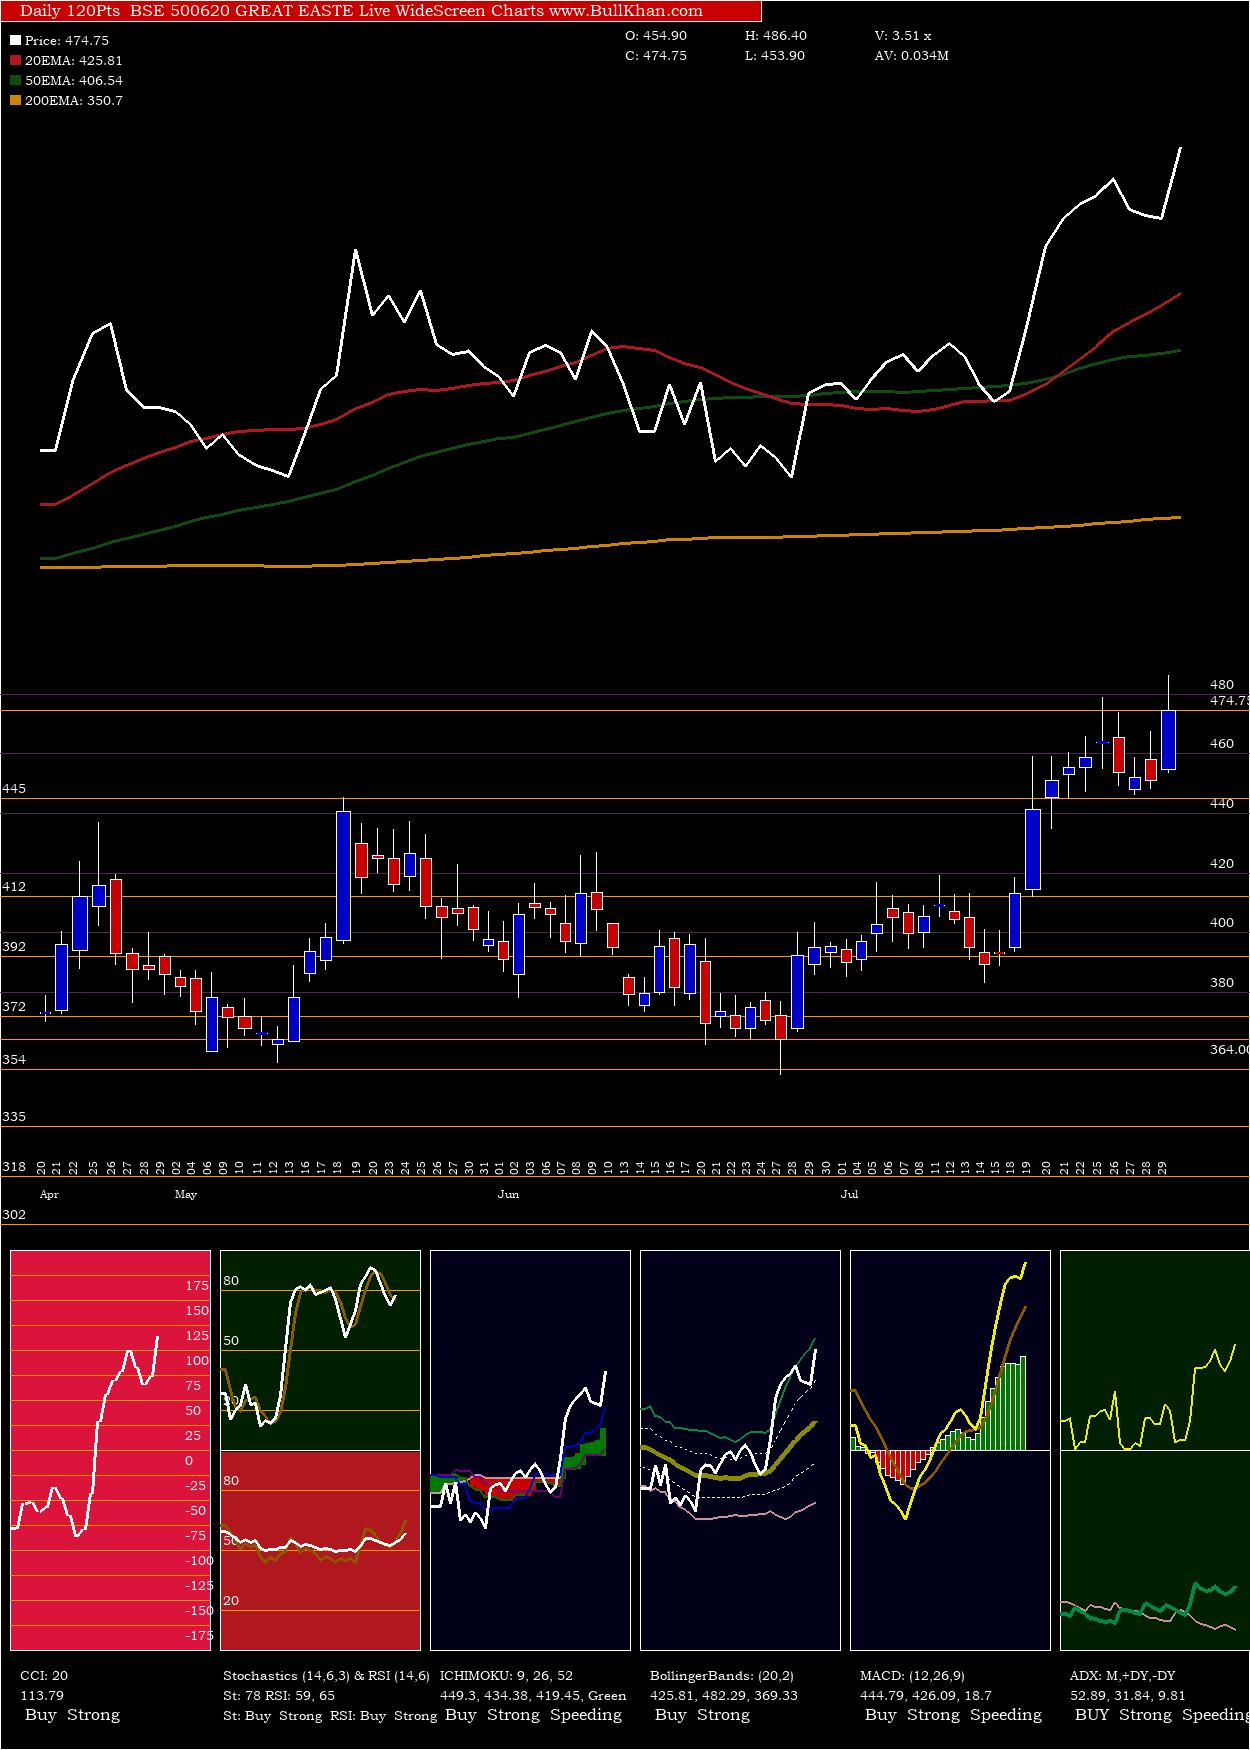 Great Easte charts and indicators